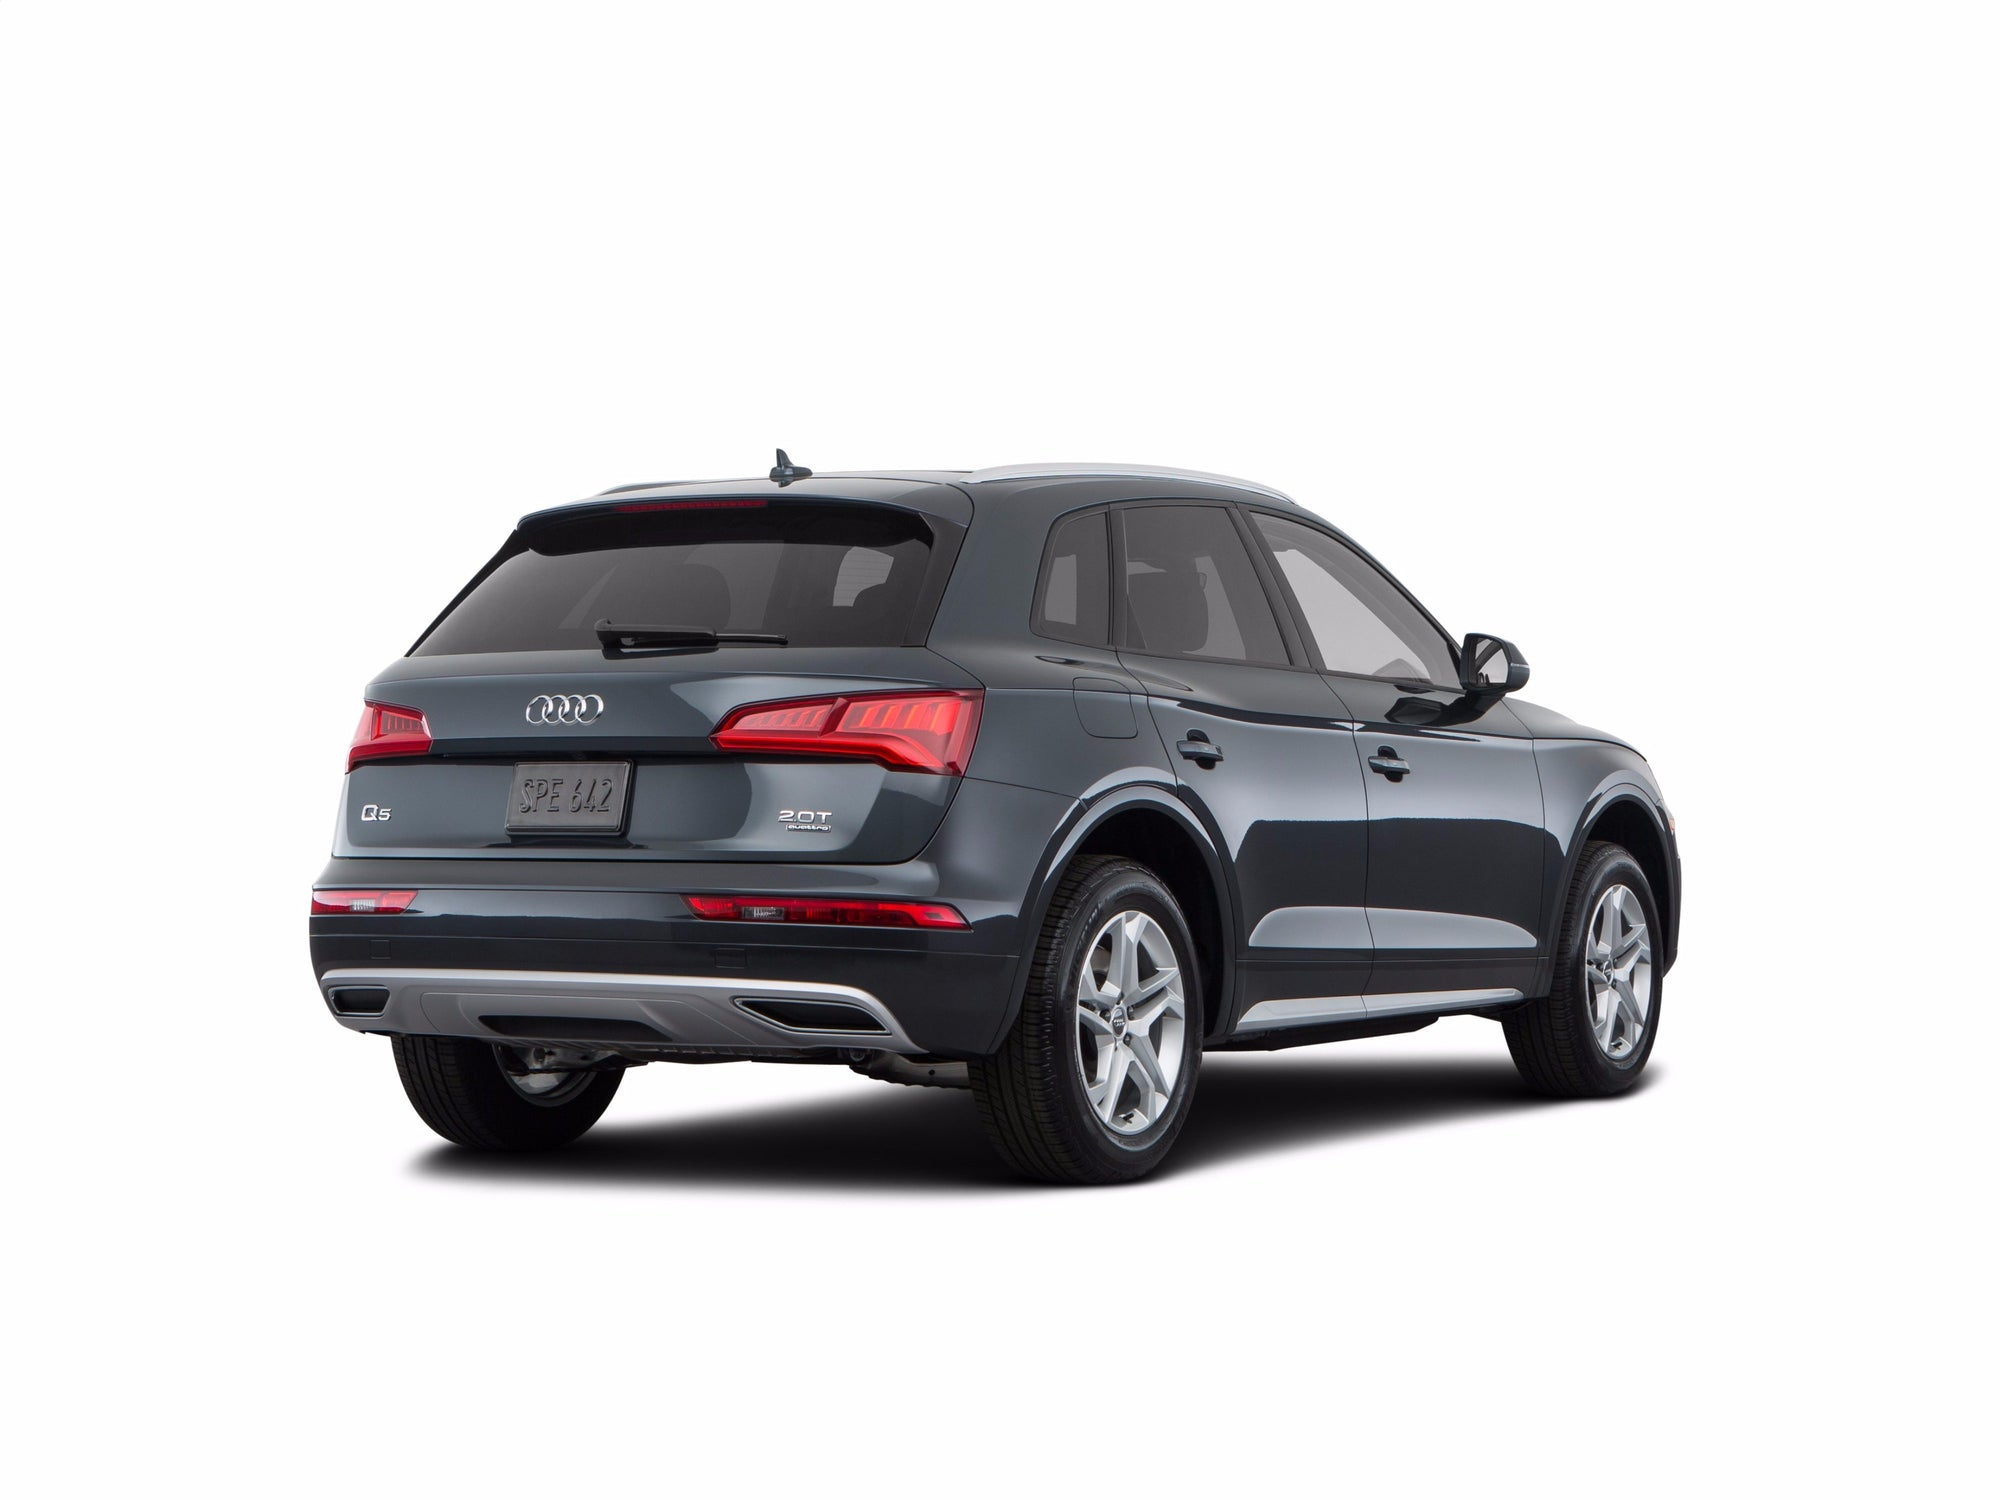 Acura Mdx Towing Capacity >> Audi Q5 hitch- MADE to be HIDDEN. Increase tow capacity!